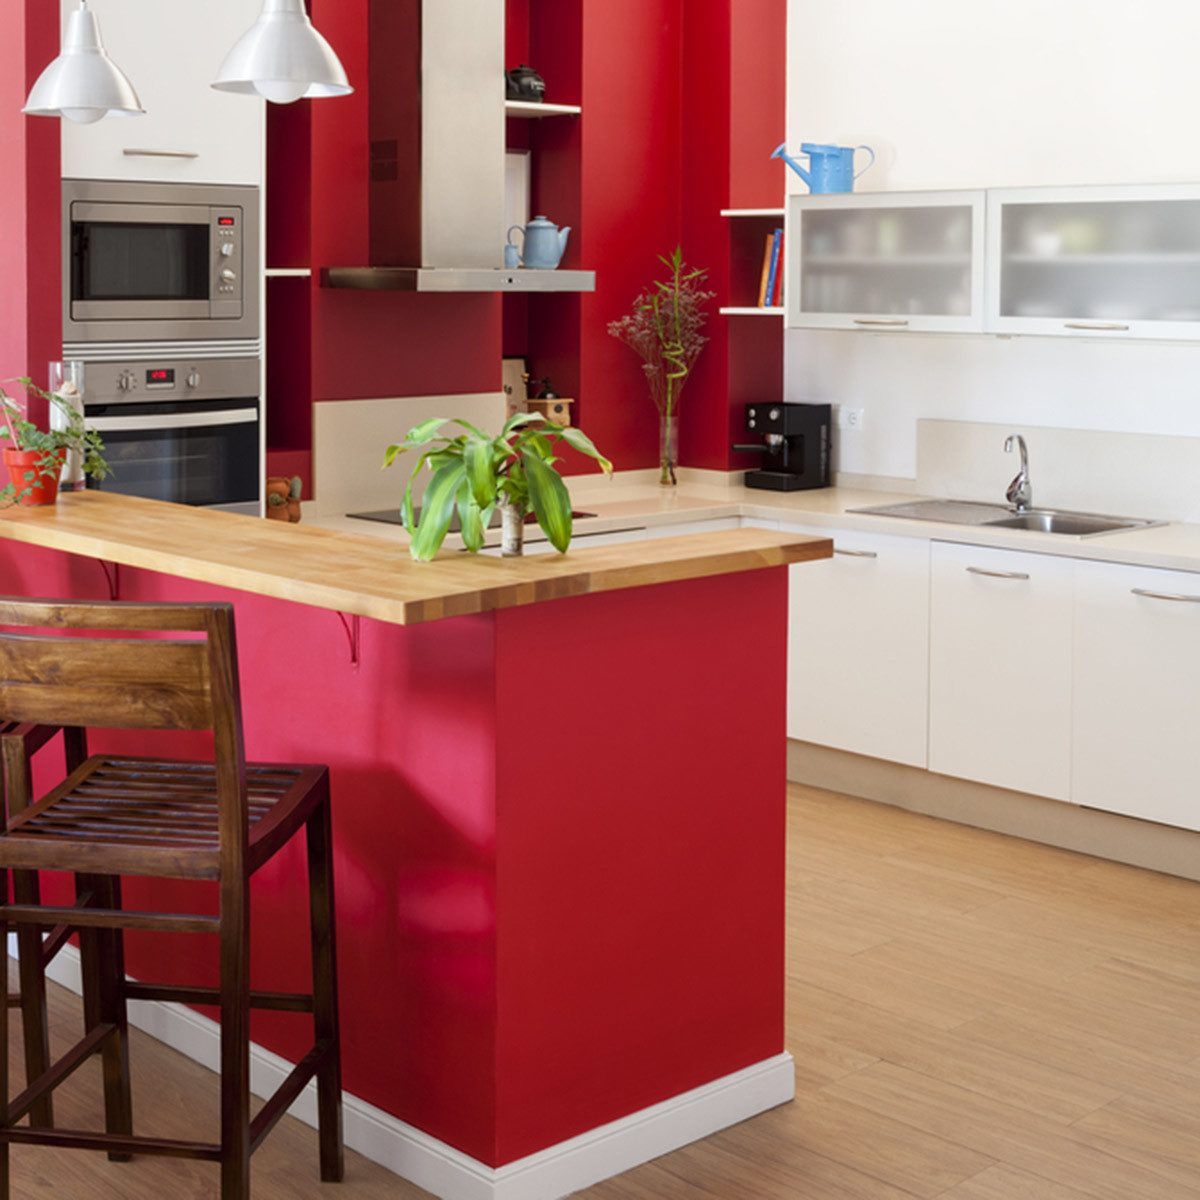 Kitchen Cabinet Colors: Bold Primary Colors